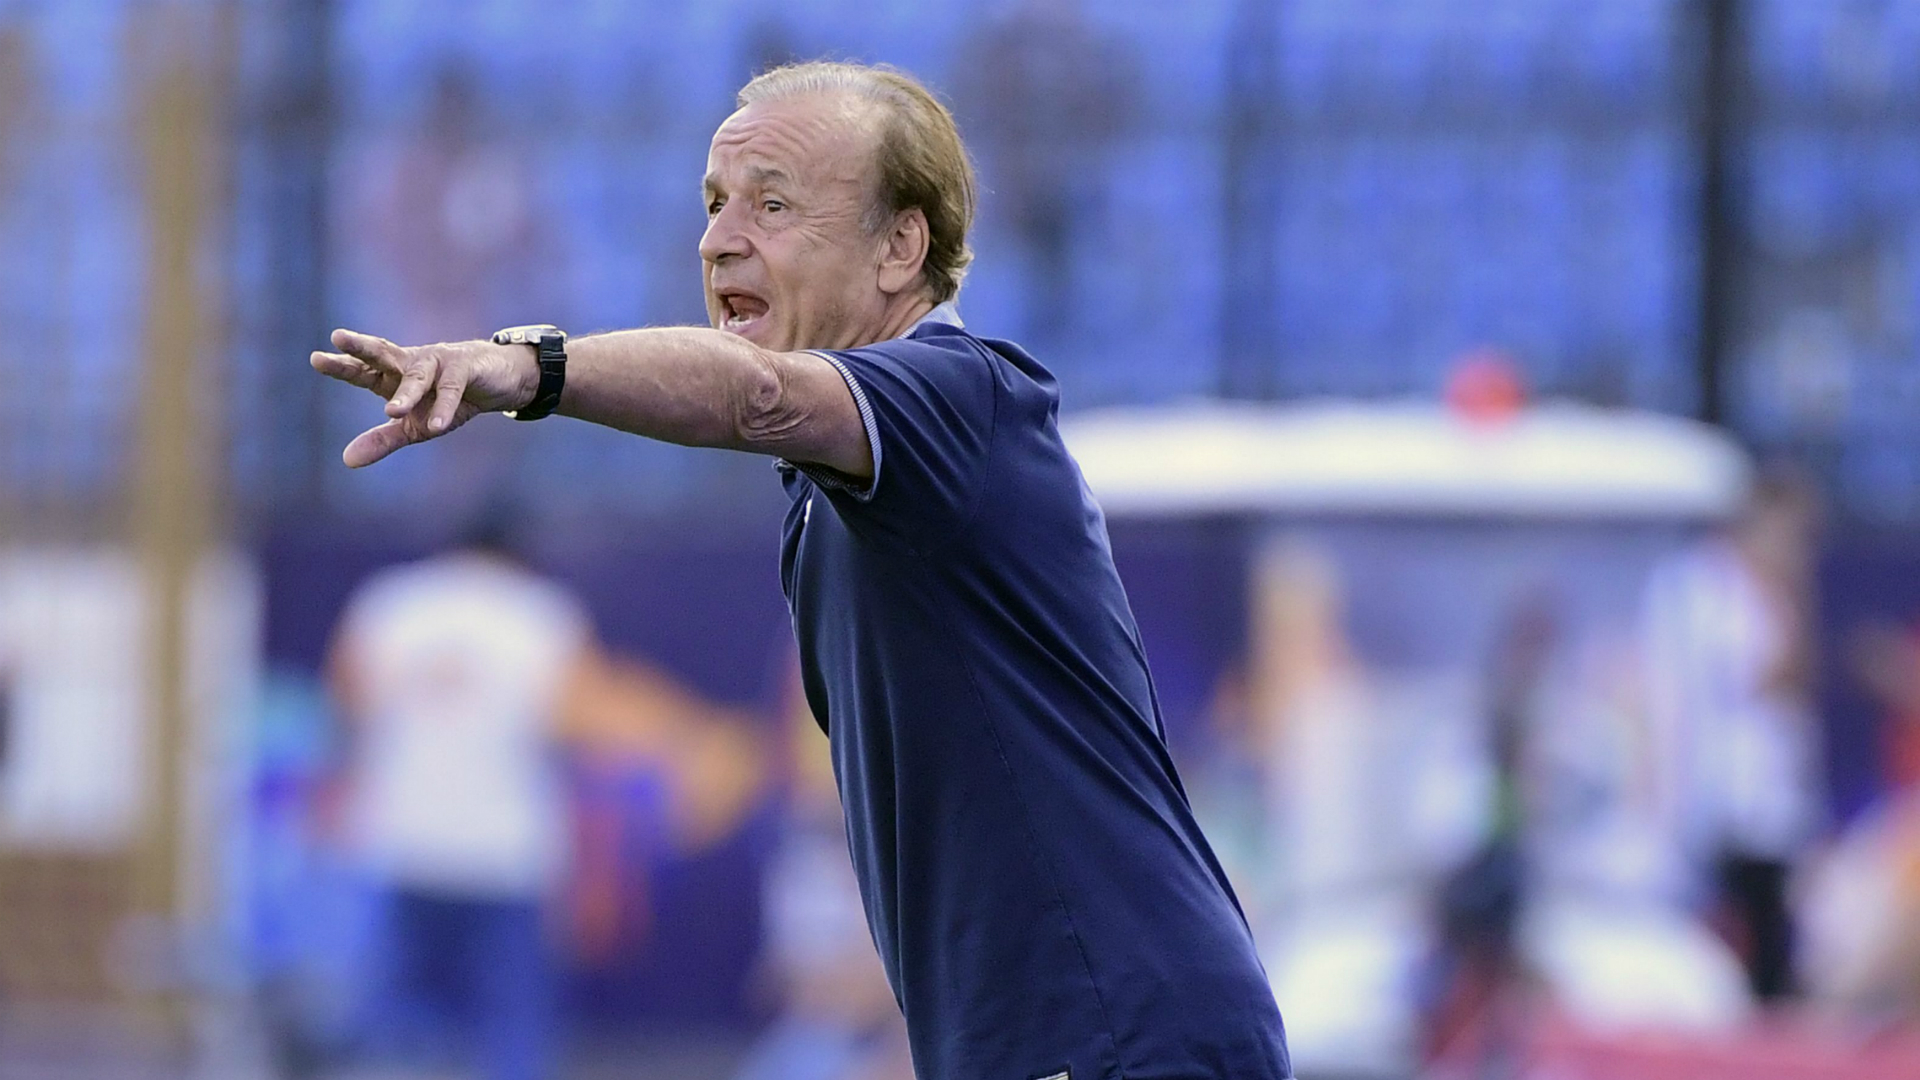 Afcon 2019: 'We are the second favourites' - Rohr hopes Nigeria can challenge Algeria